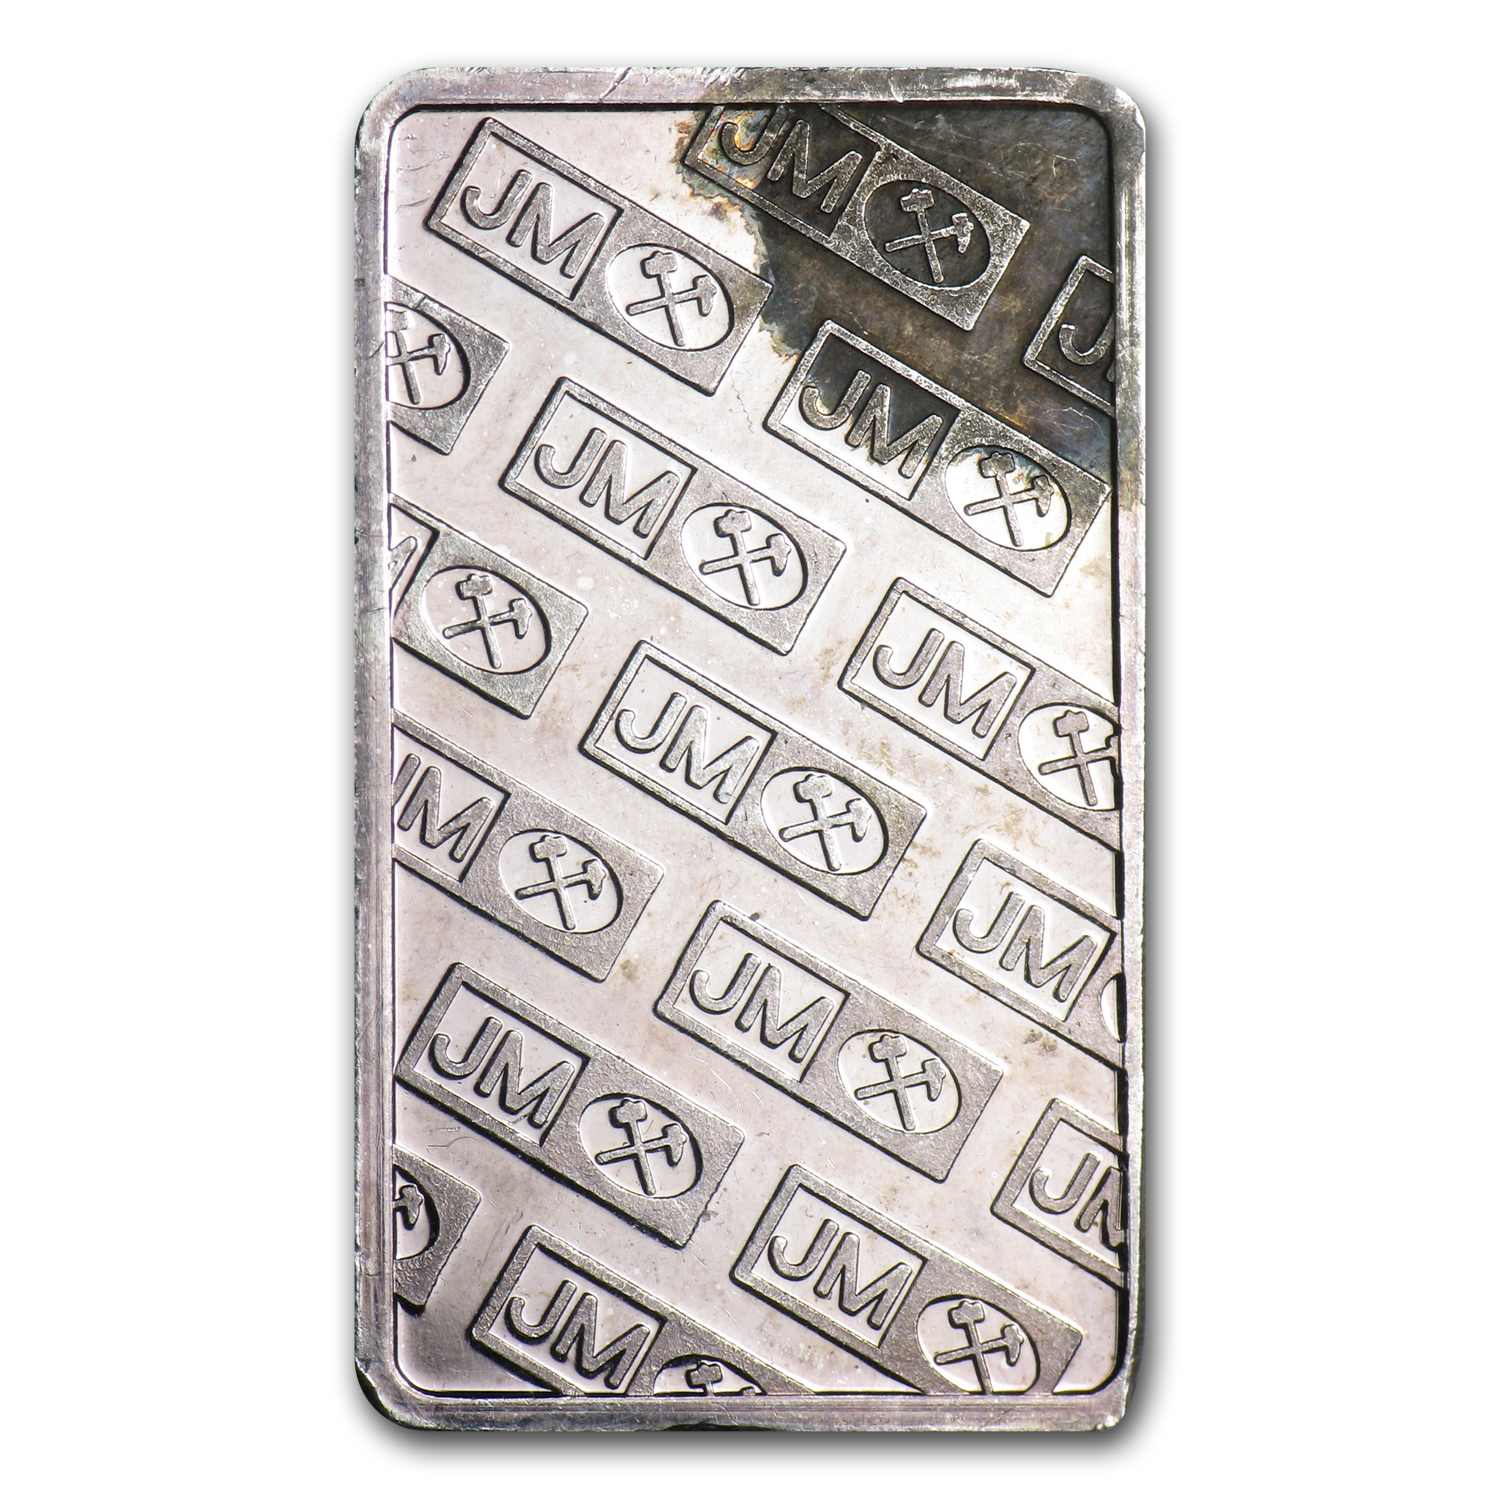 5 gram Silver Bar - Johnson Matthey (Scruffy)